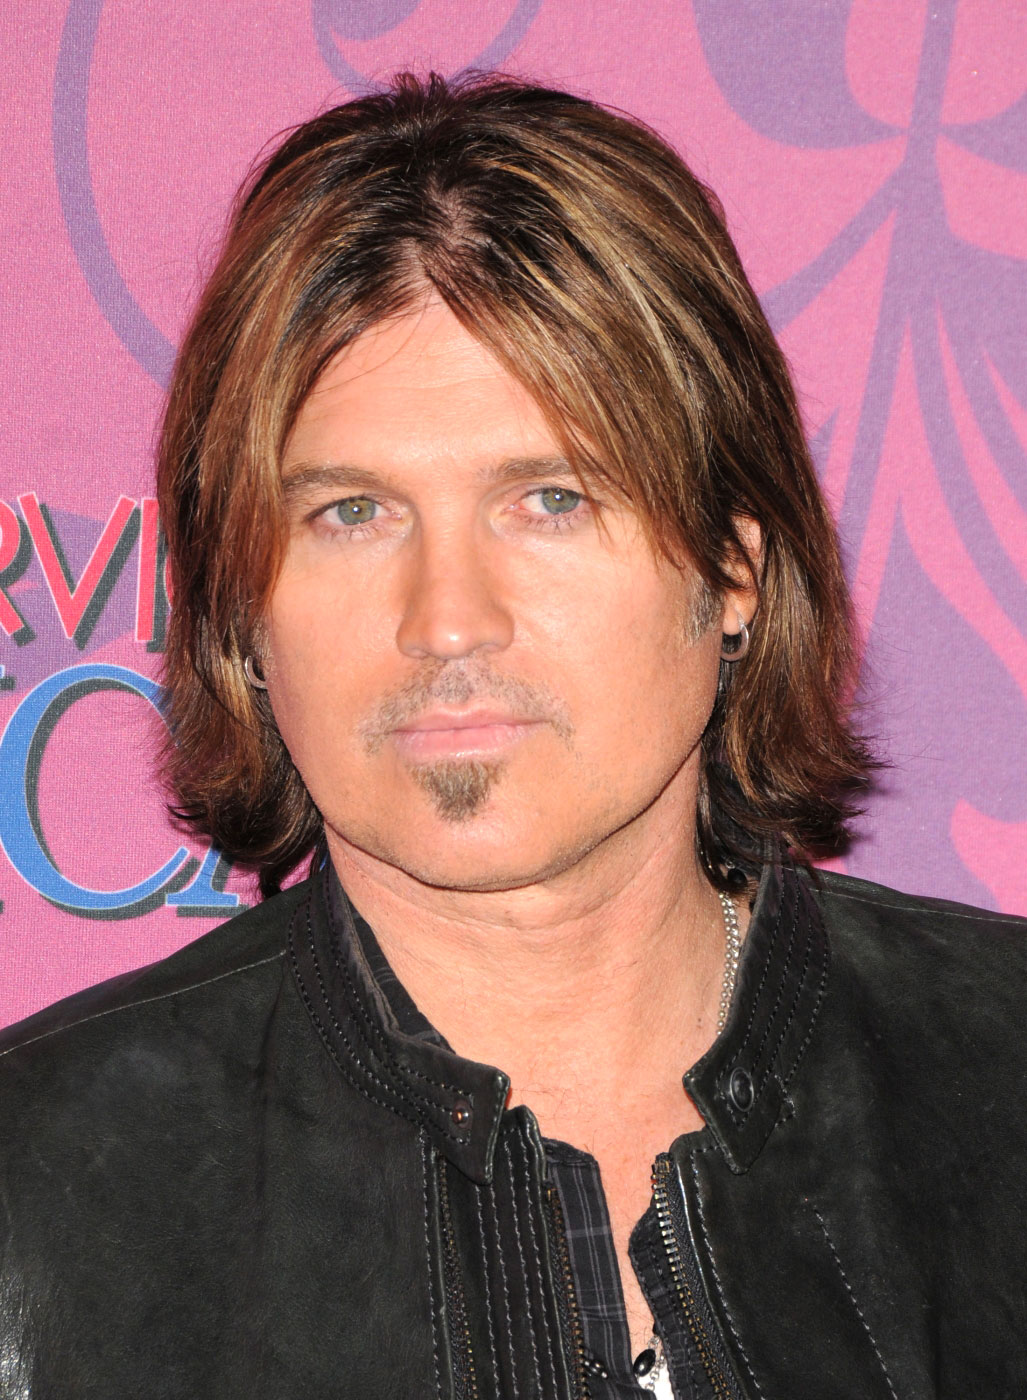 Billy Ray Cyrus Hairstyle Easyhairstyler